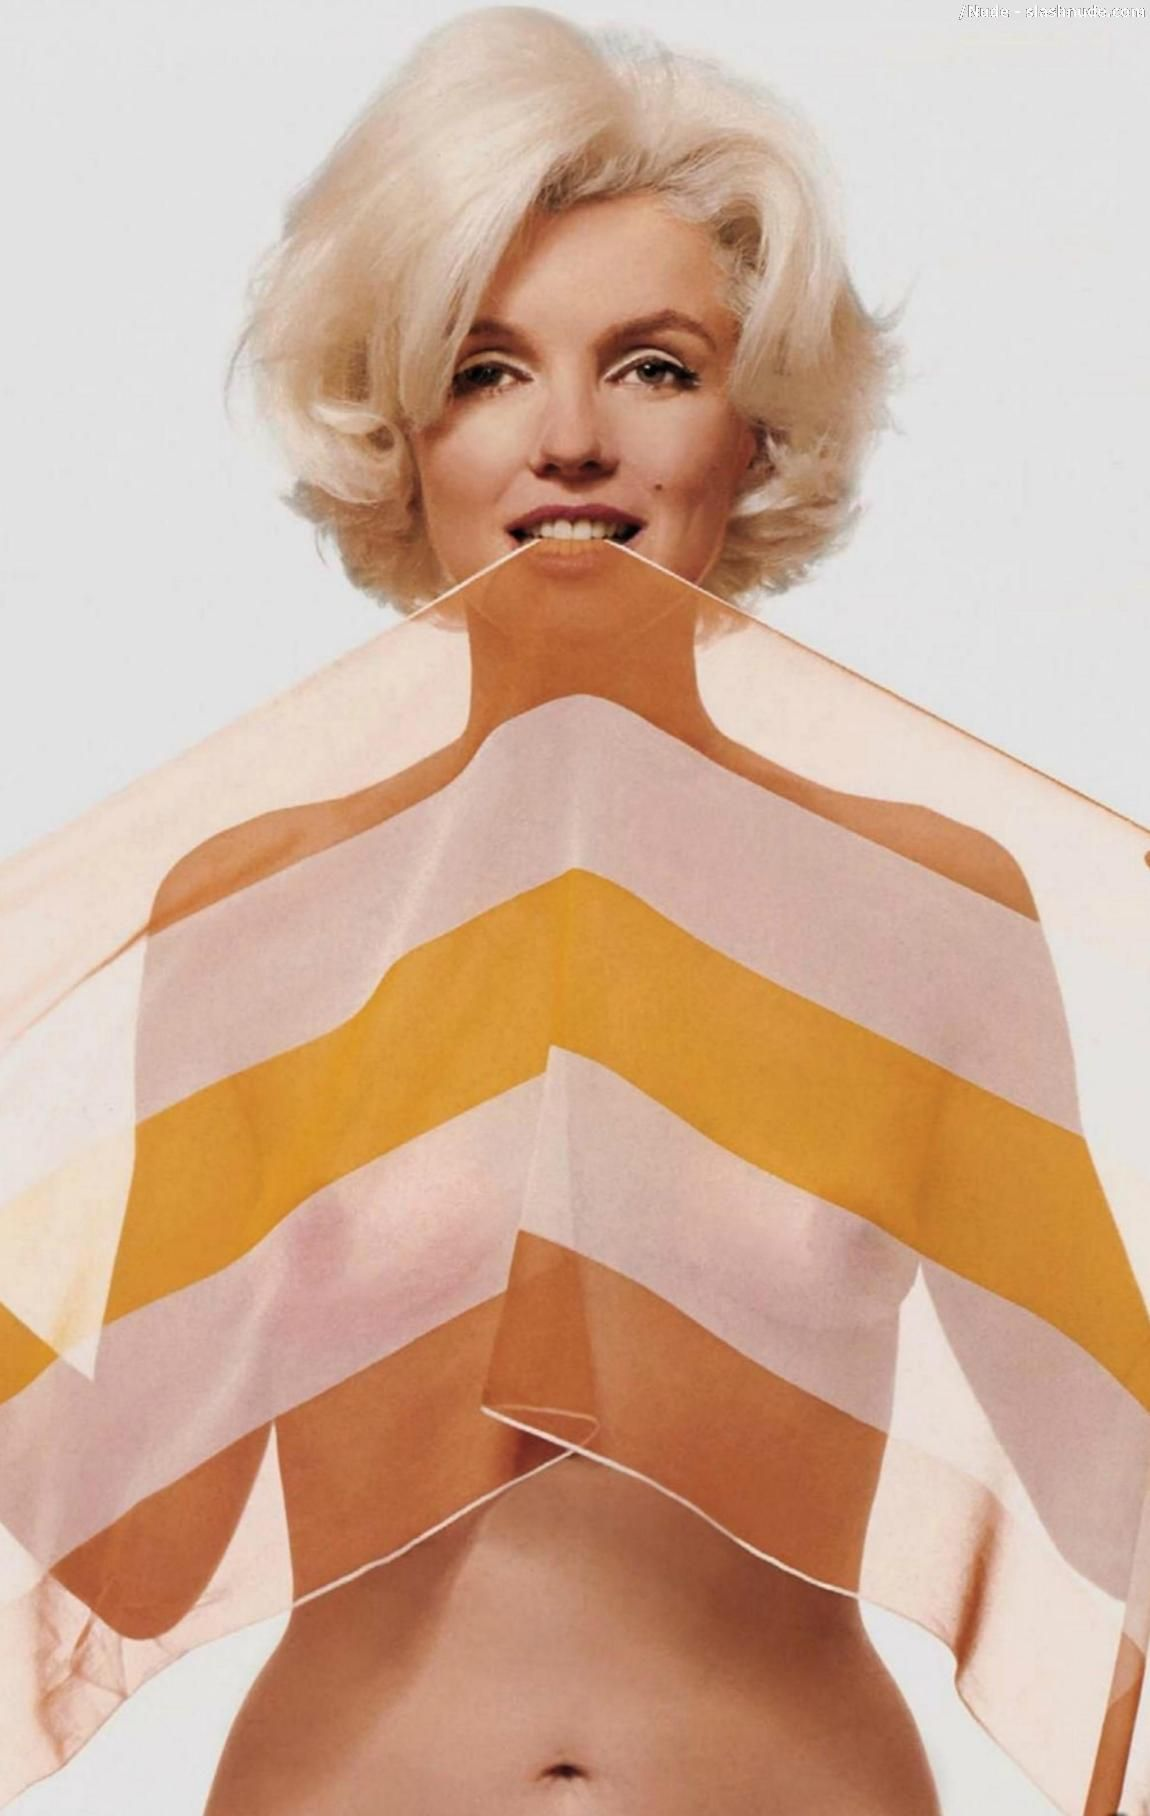 Marilyn-Monroe-Nude-In-Playboy-Tribute-Issue-6370-7Jpg 1 -5437